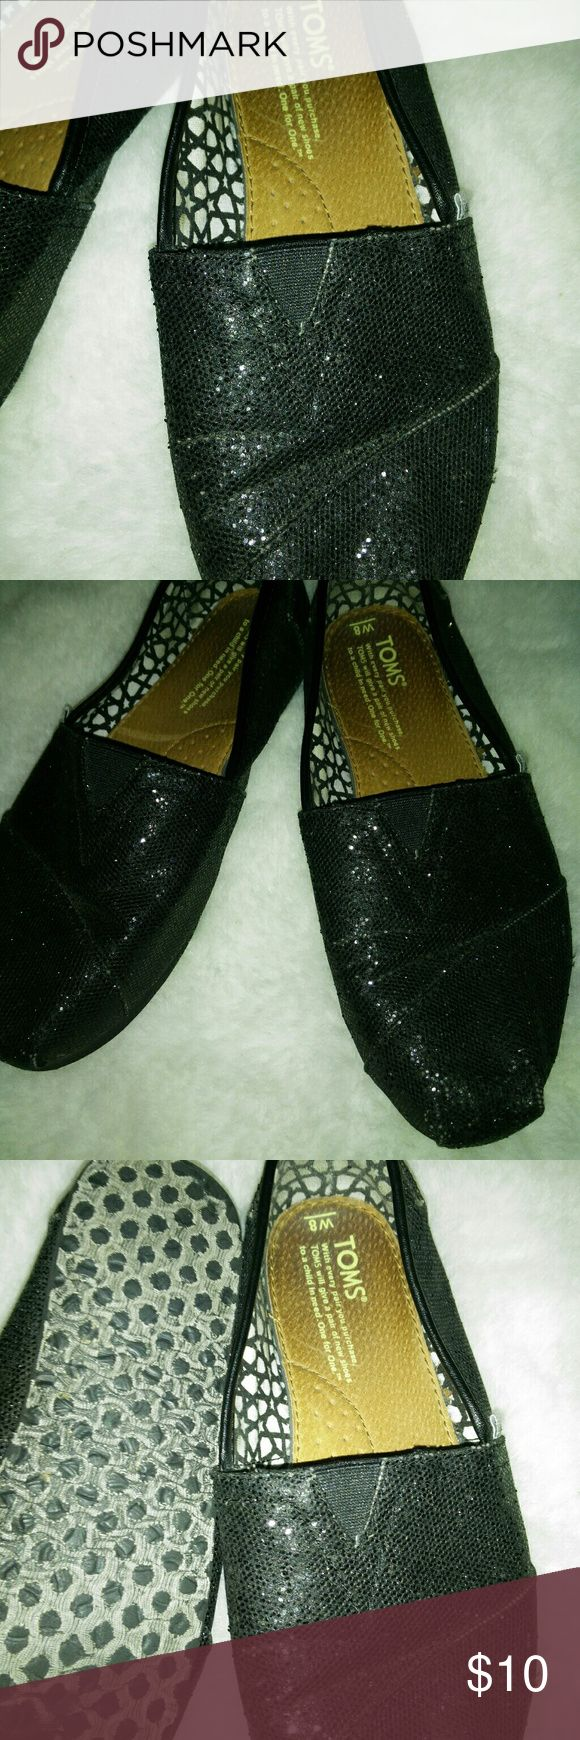 TOMS Ladies shoes Black sparkle TOMS slip on shoes  Not worn much  Size 8 Toms Shoes Flats & Loafers